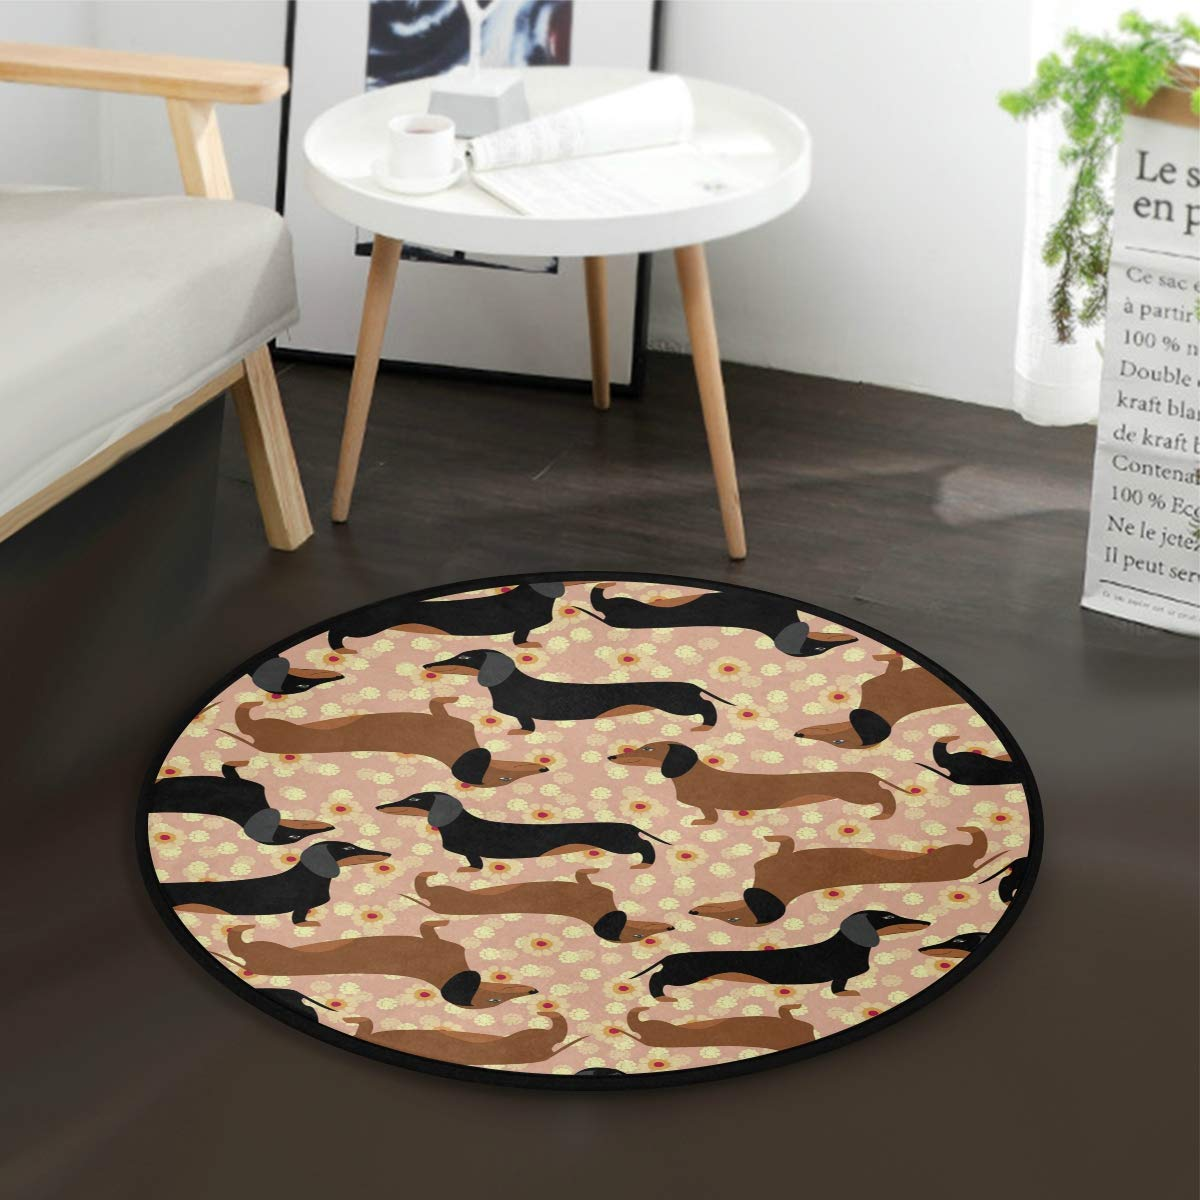 Diameter 36.2 AMONKA Cute Dachshund Dog Flowers Kids Round Rug Baby Crawling Non-Slip Mats Child Activity Play Mat For Bedroom Playroom Home Decor